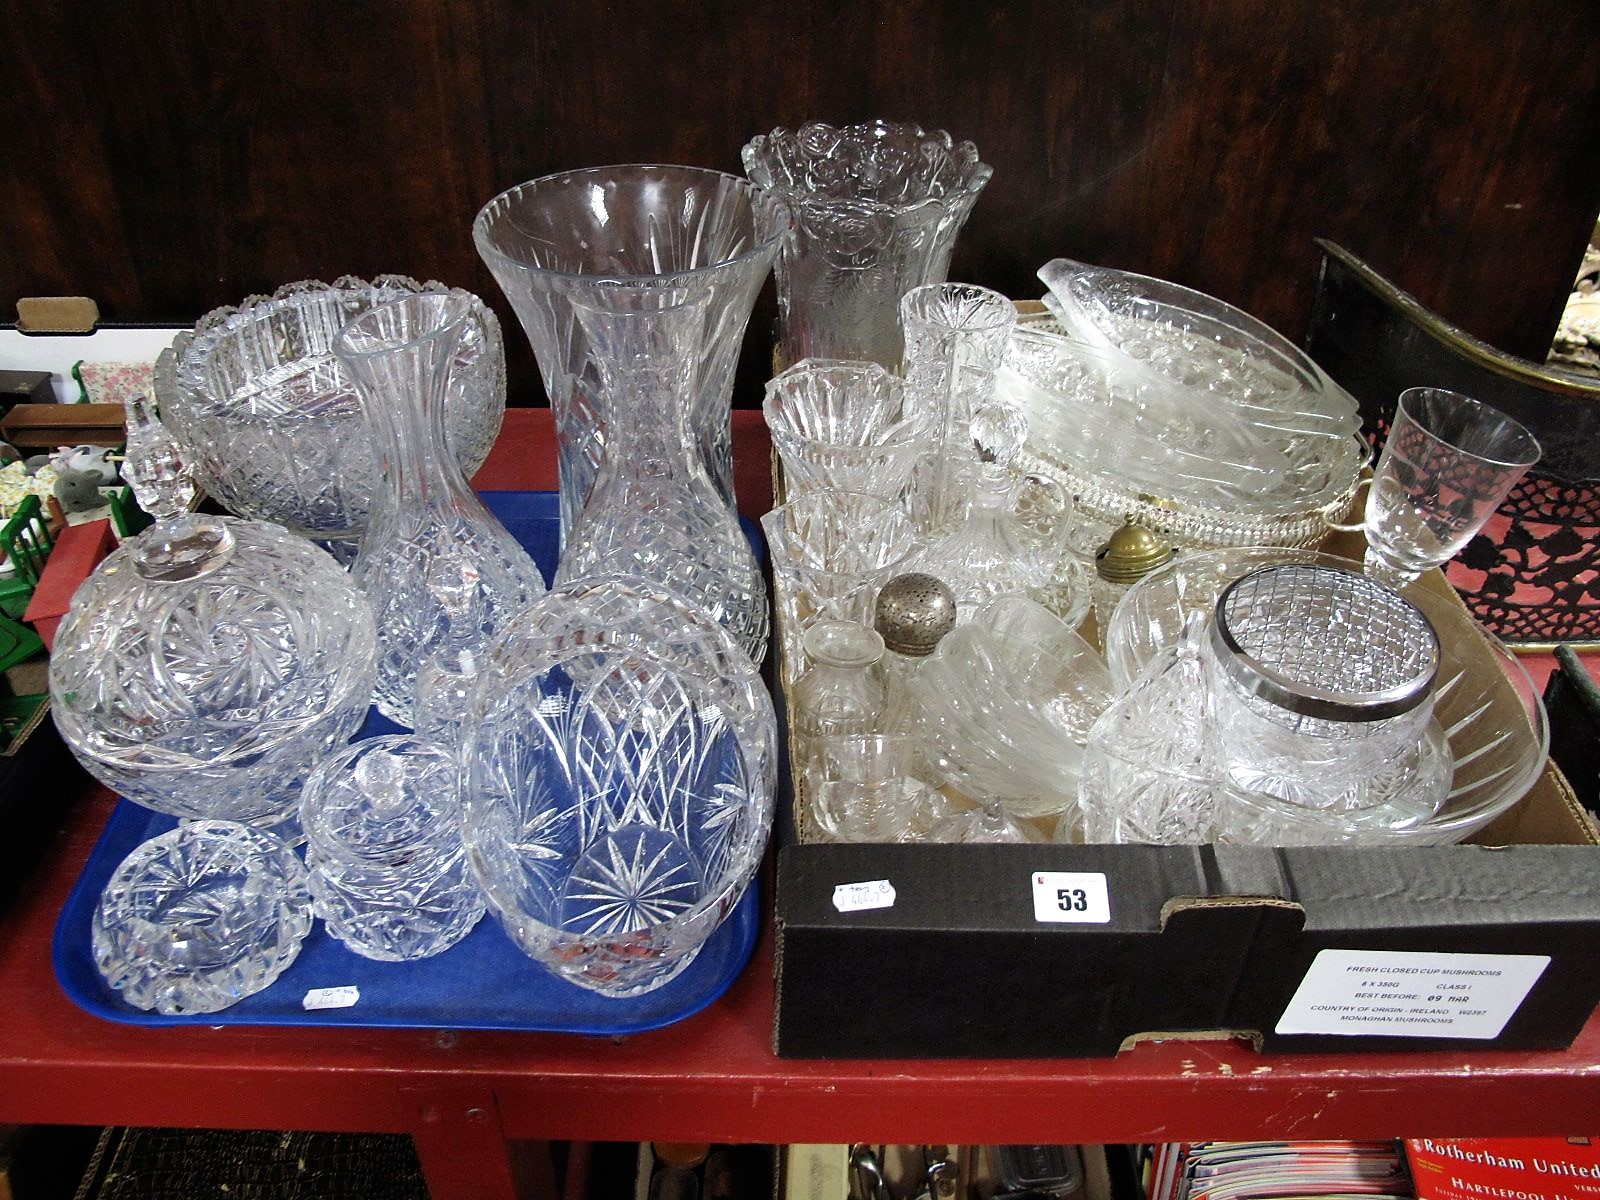 Lot 53 - A Lead Crystal Basket, vases, decanters, dish and cover, pedestal bowl, and other glassware:- One